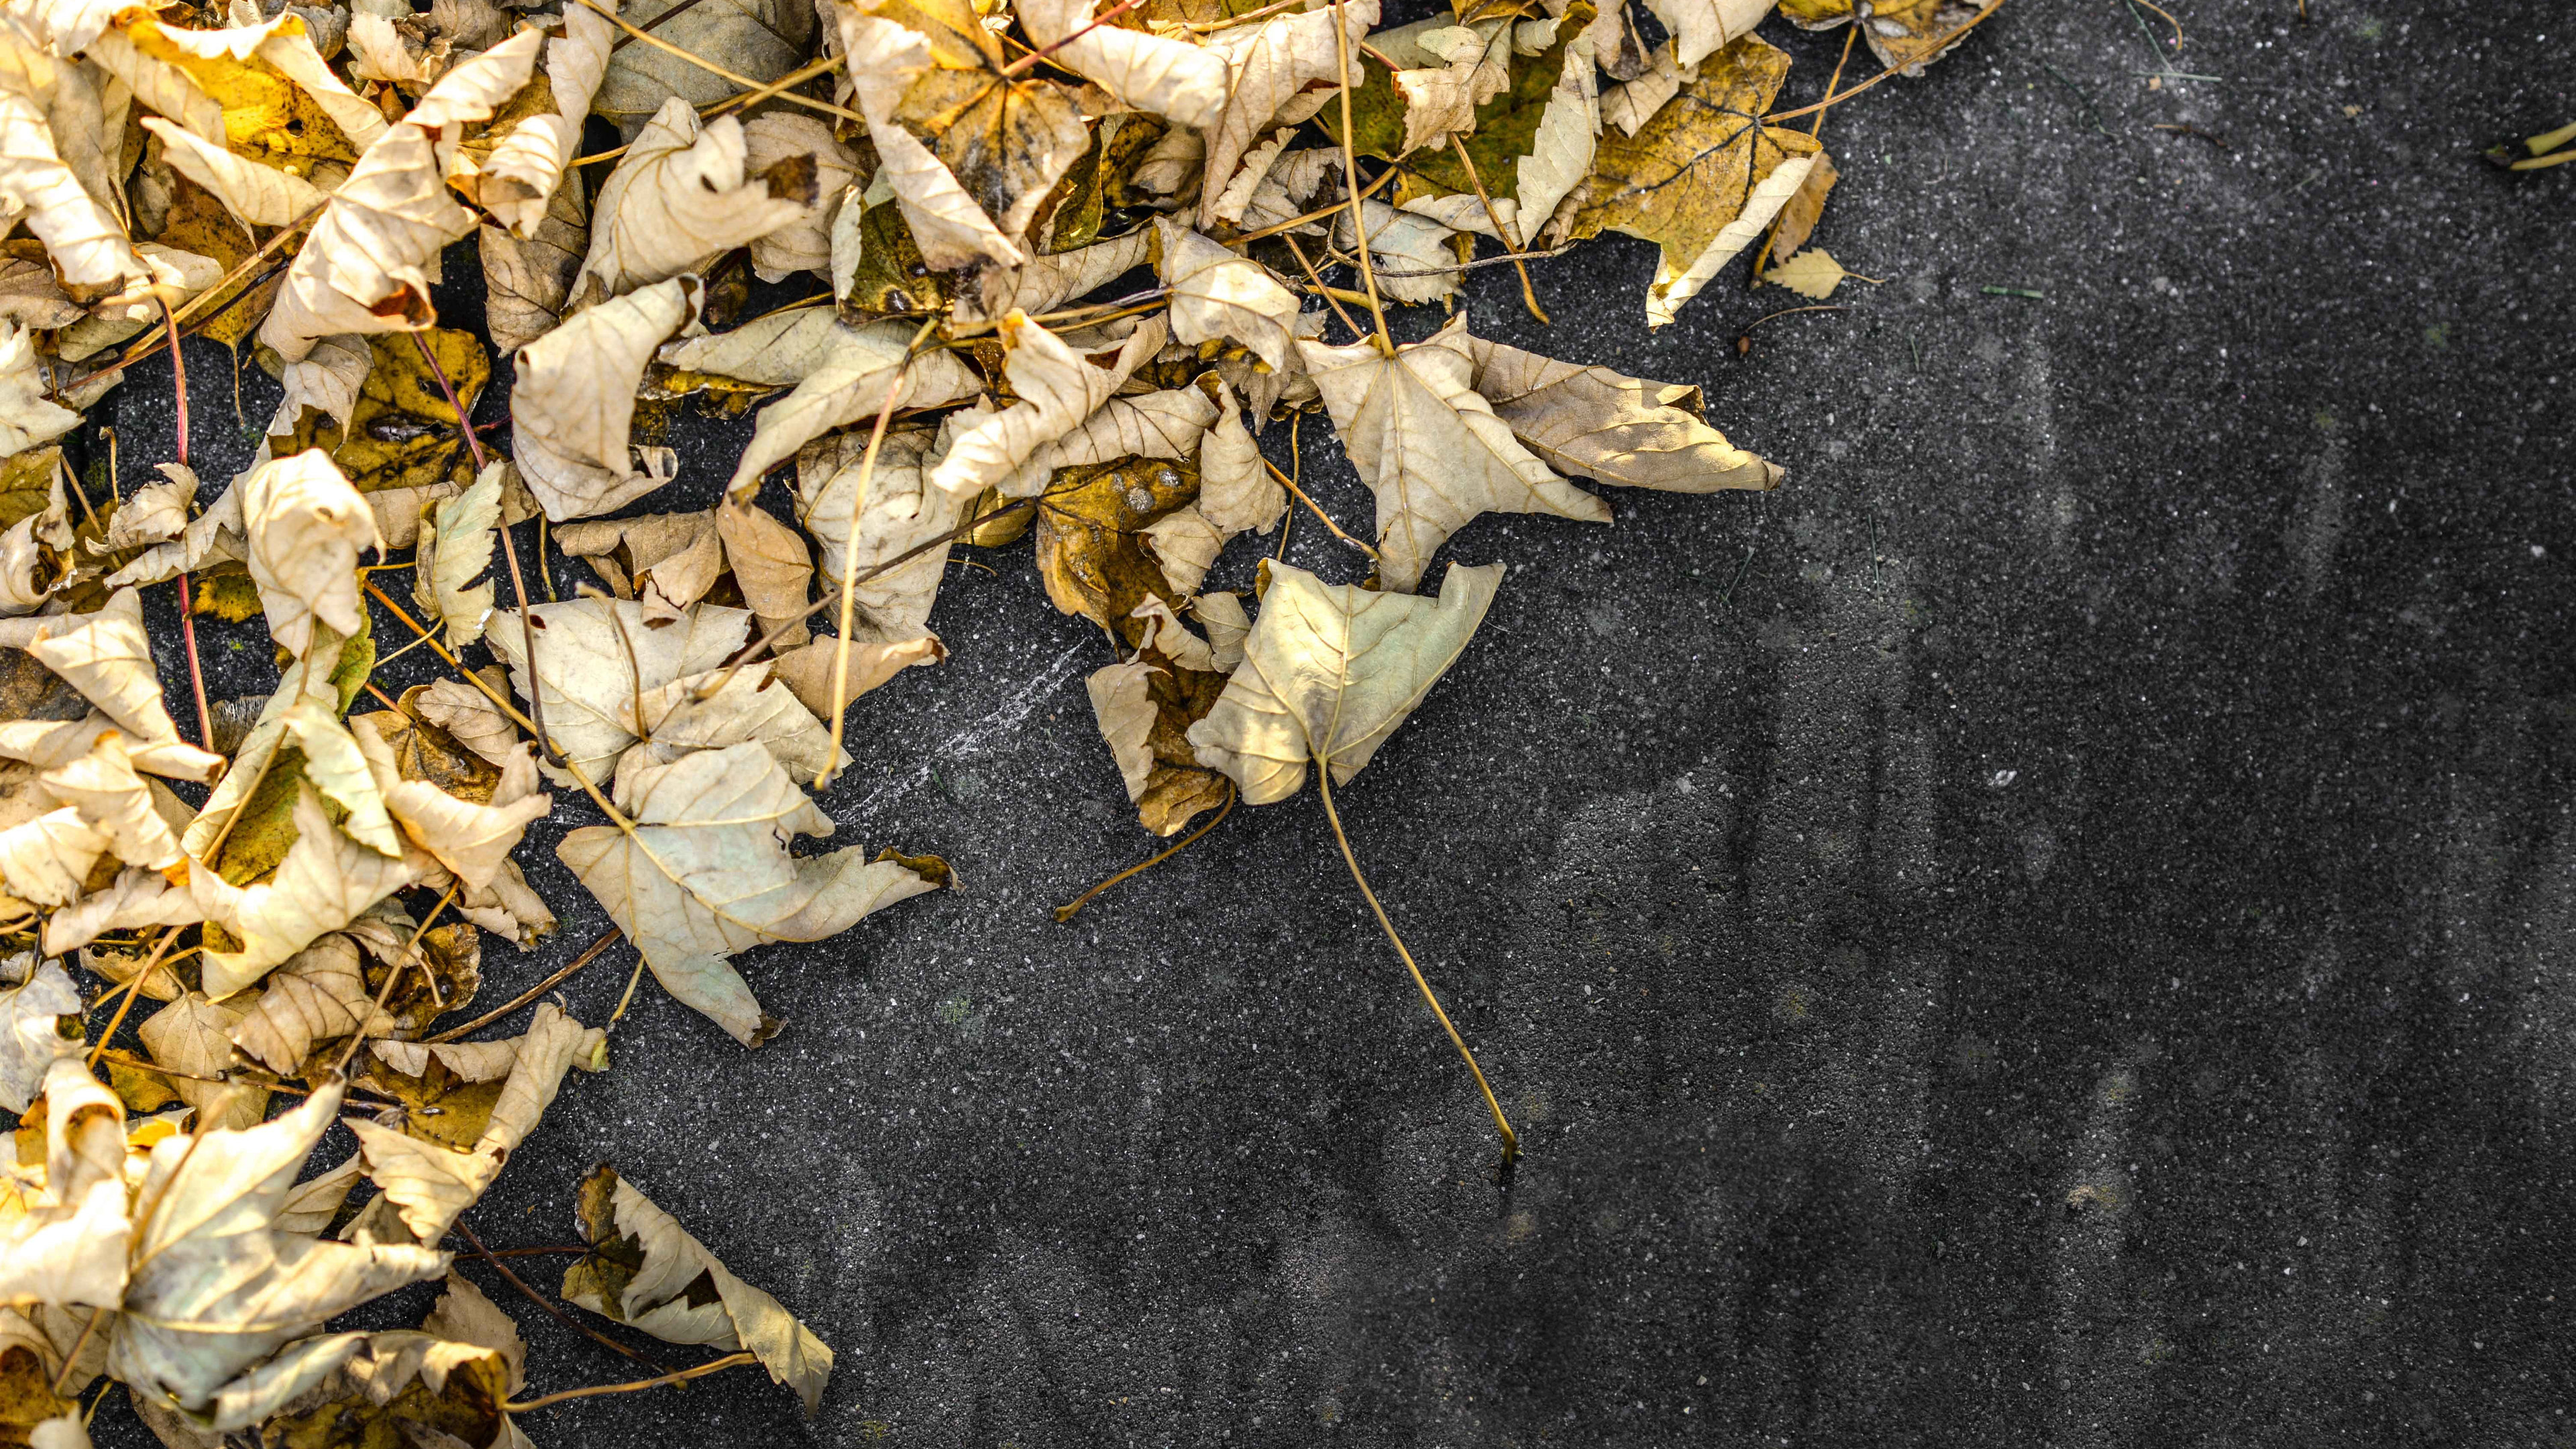 yellow leaves on ground 4k 1540134125 - Yellow Leaves On Ground 4k - nature wallpapers, leaves wallpapers, hd-wallpapers, ground wallpapers, 5k wallpapers, 4k-wallpapers